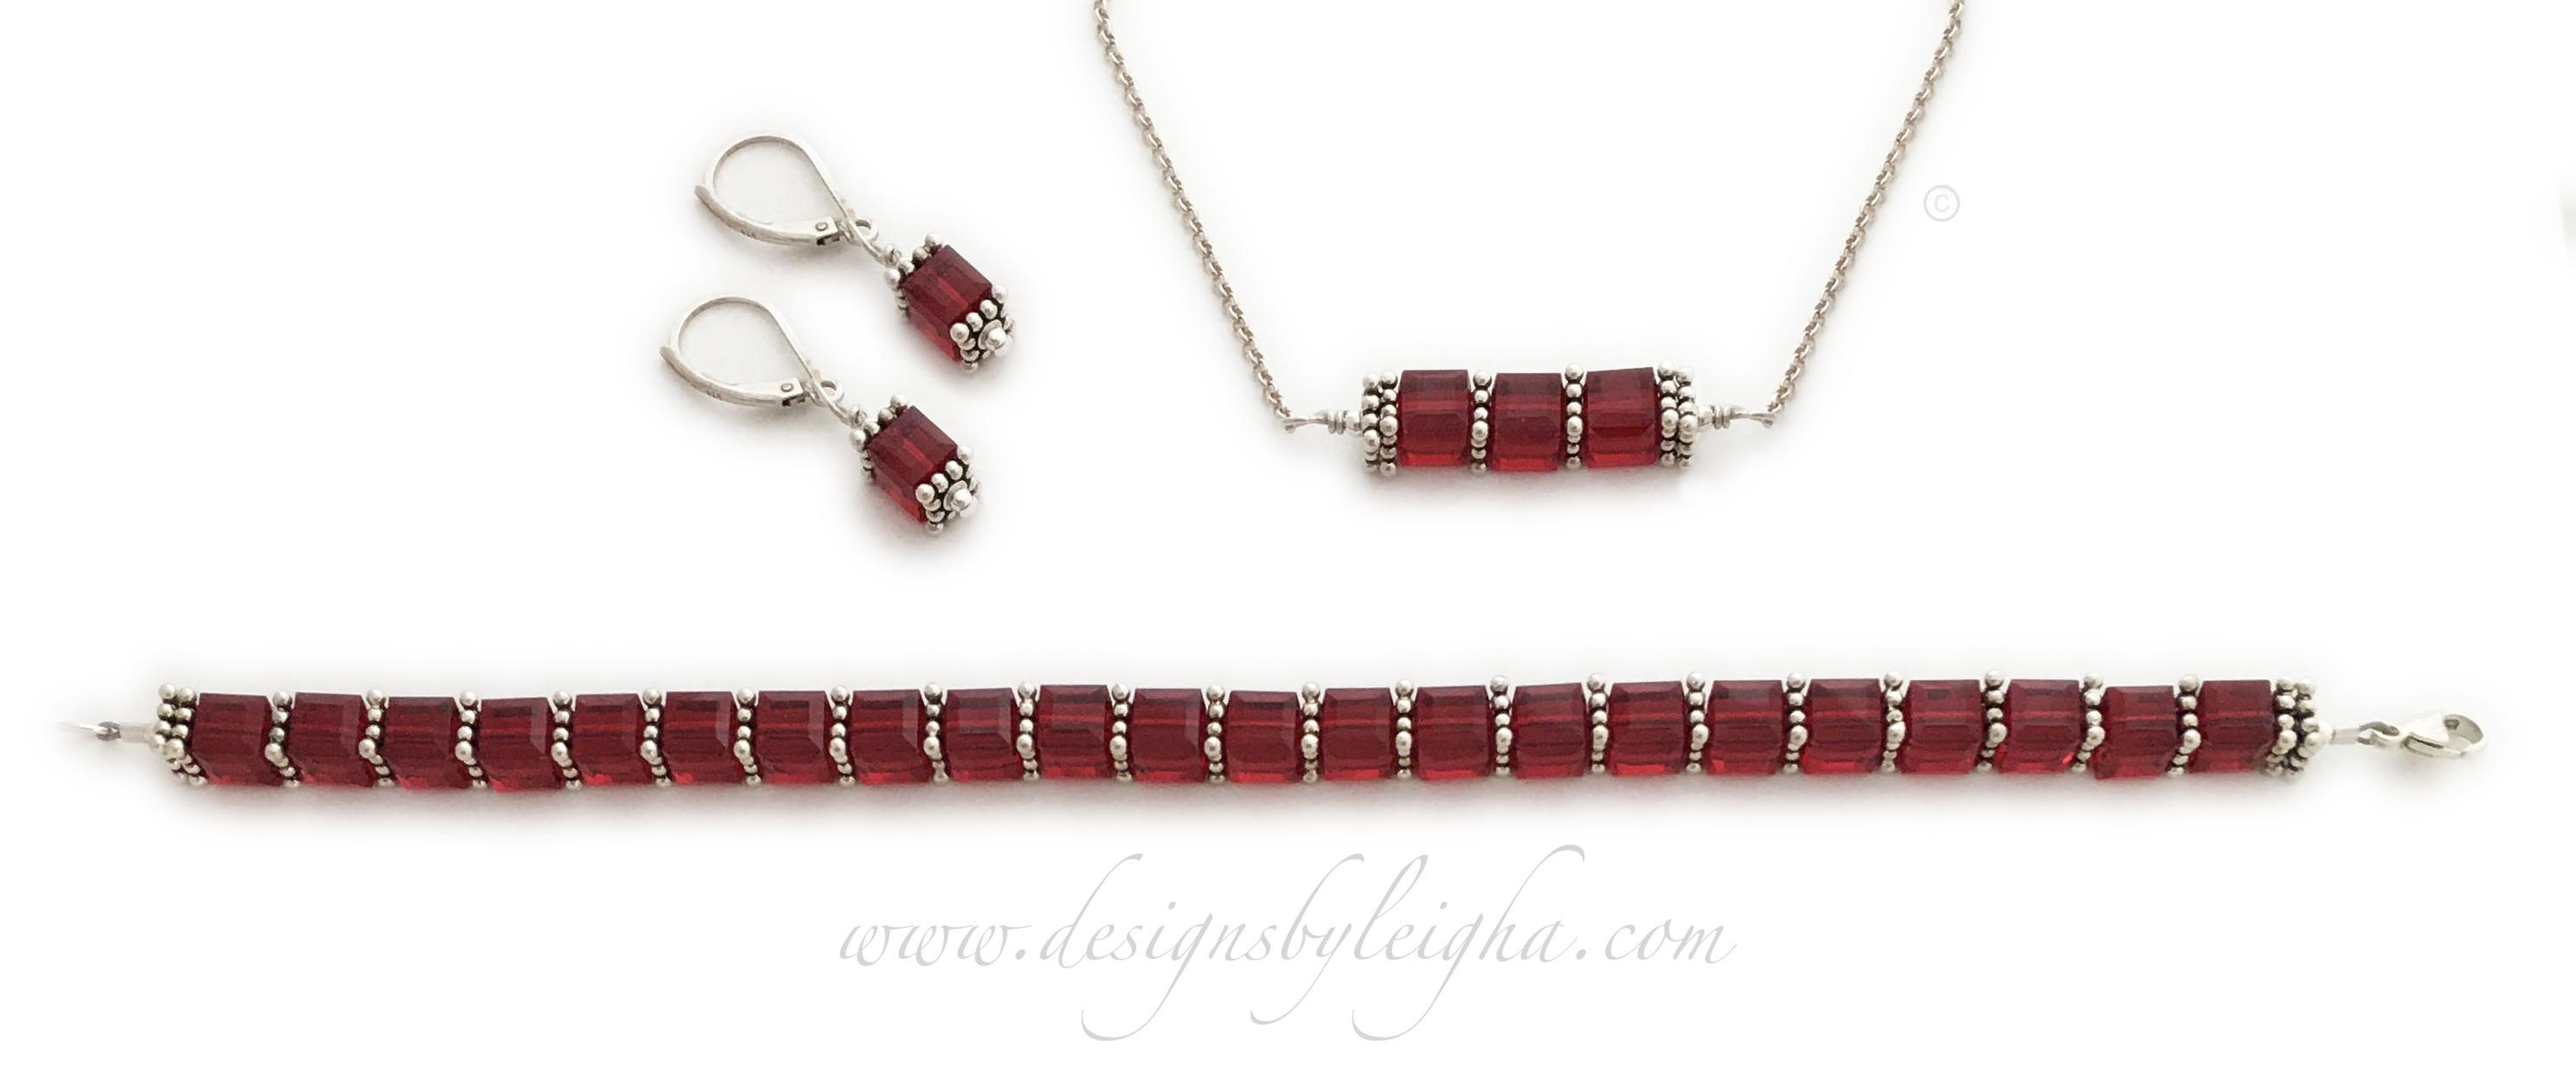 Ruby Birthstone Jewelery Set - Ruby Earrings, Ruby Bracelet and Ruby Necklace